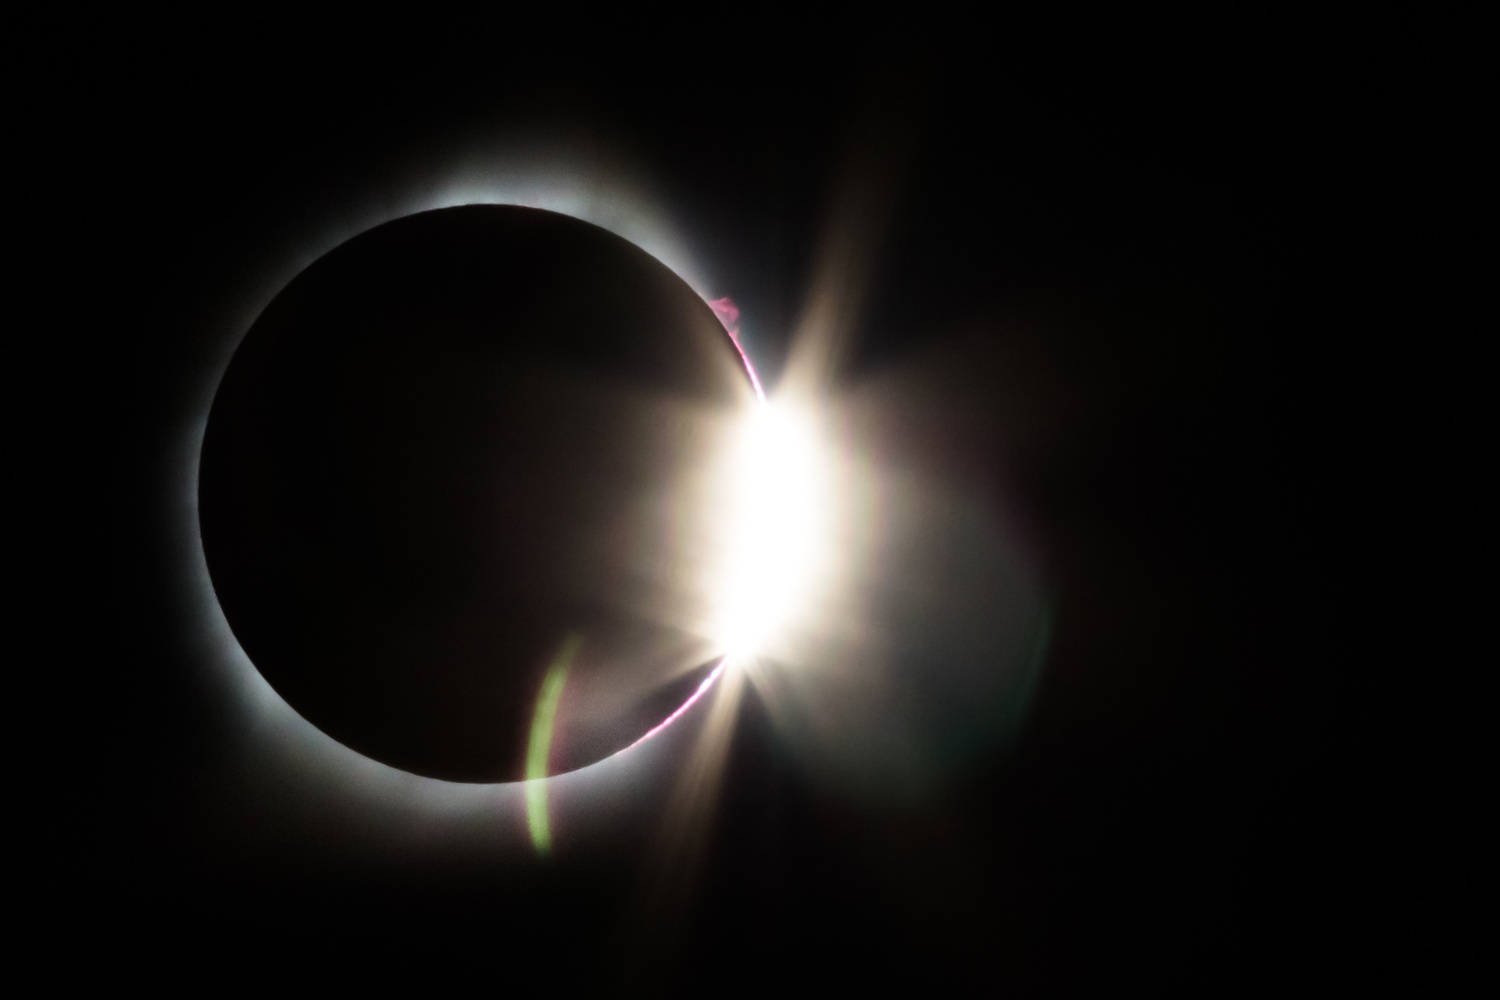 The Great American Eclipse by Peter Bumbarger